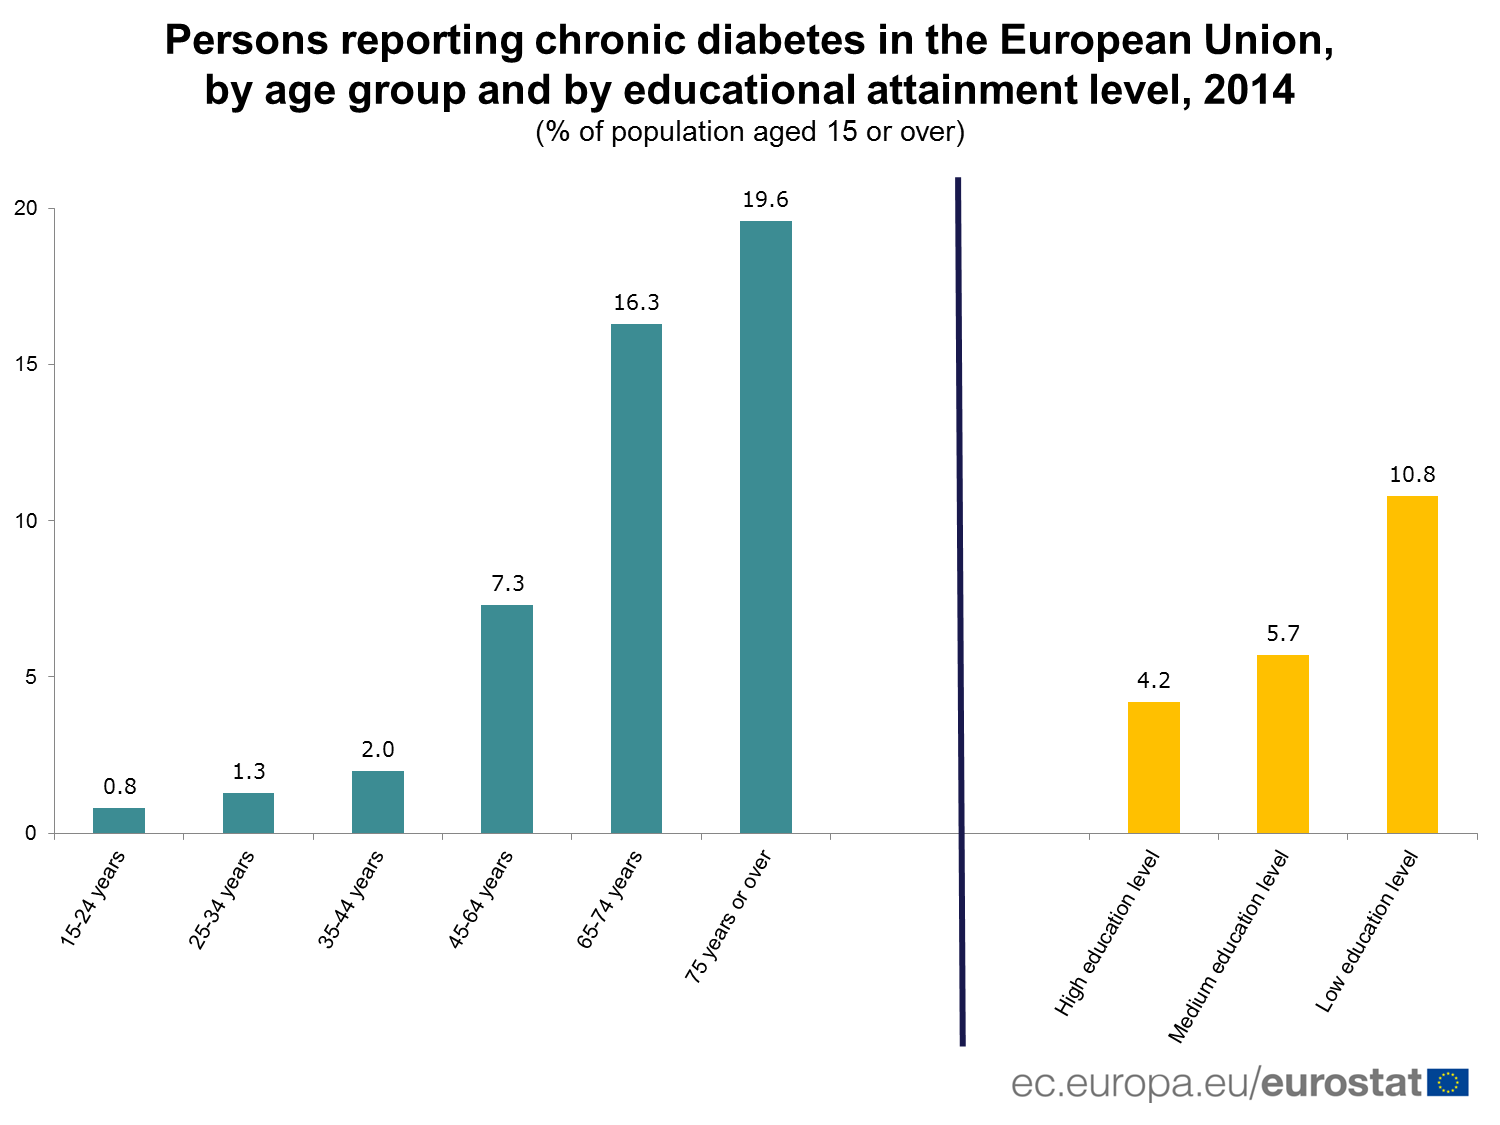 Persons reporting chronic diabetes in the EU, 2014